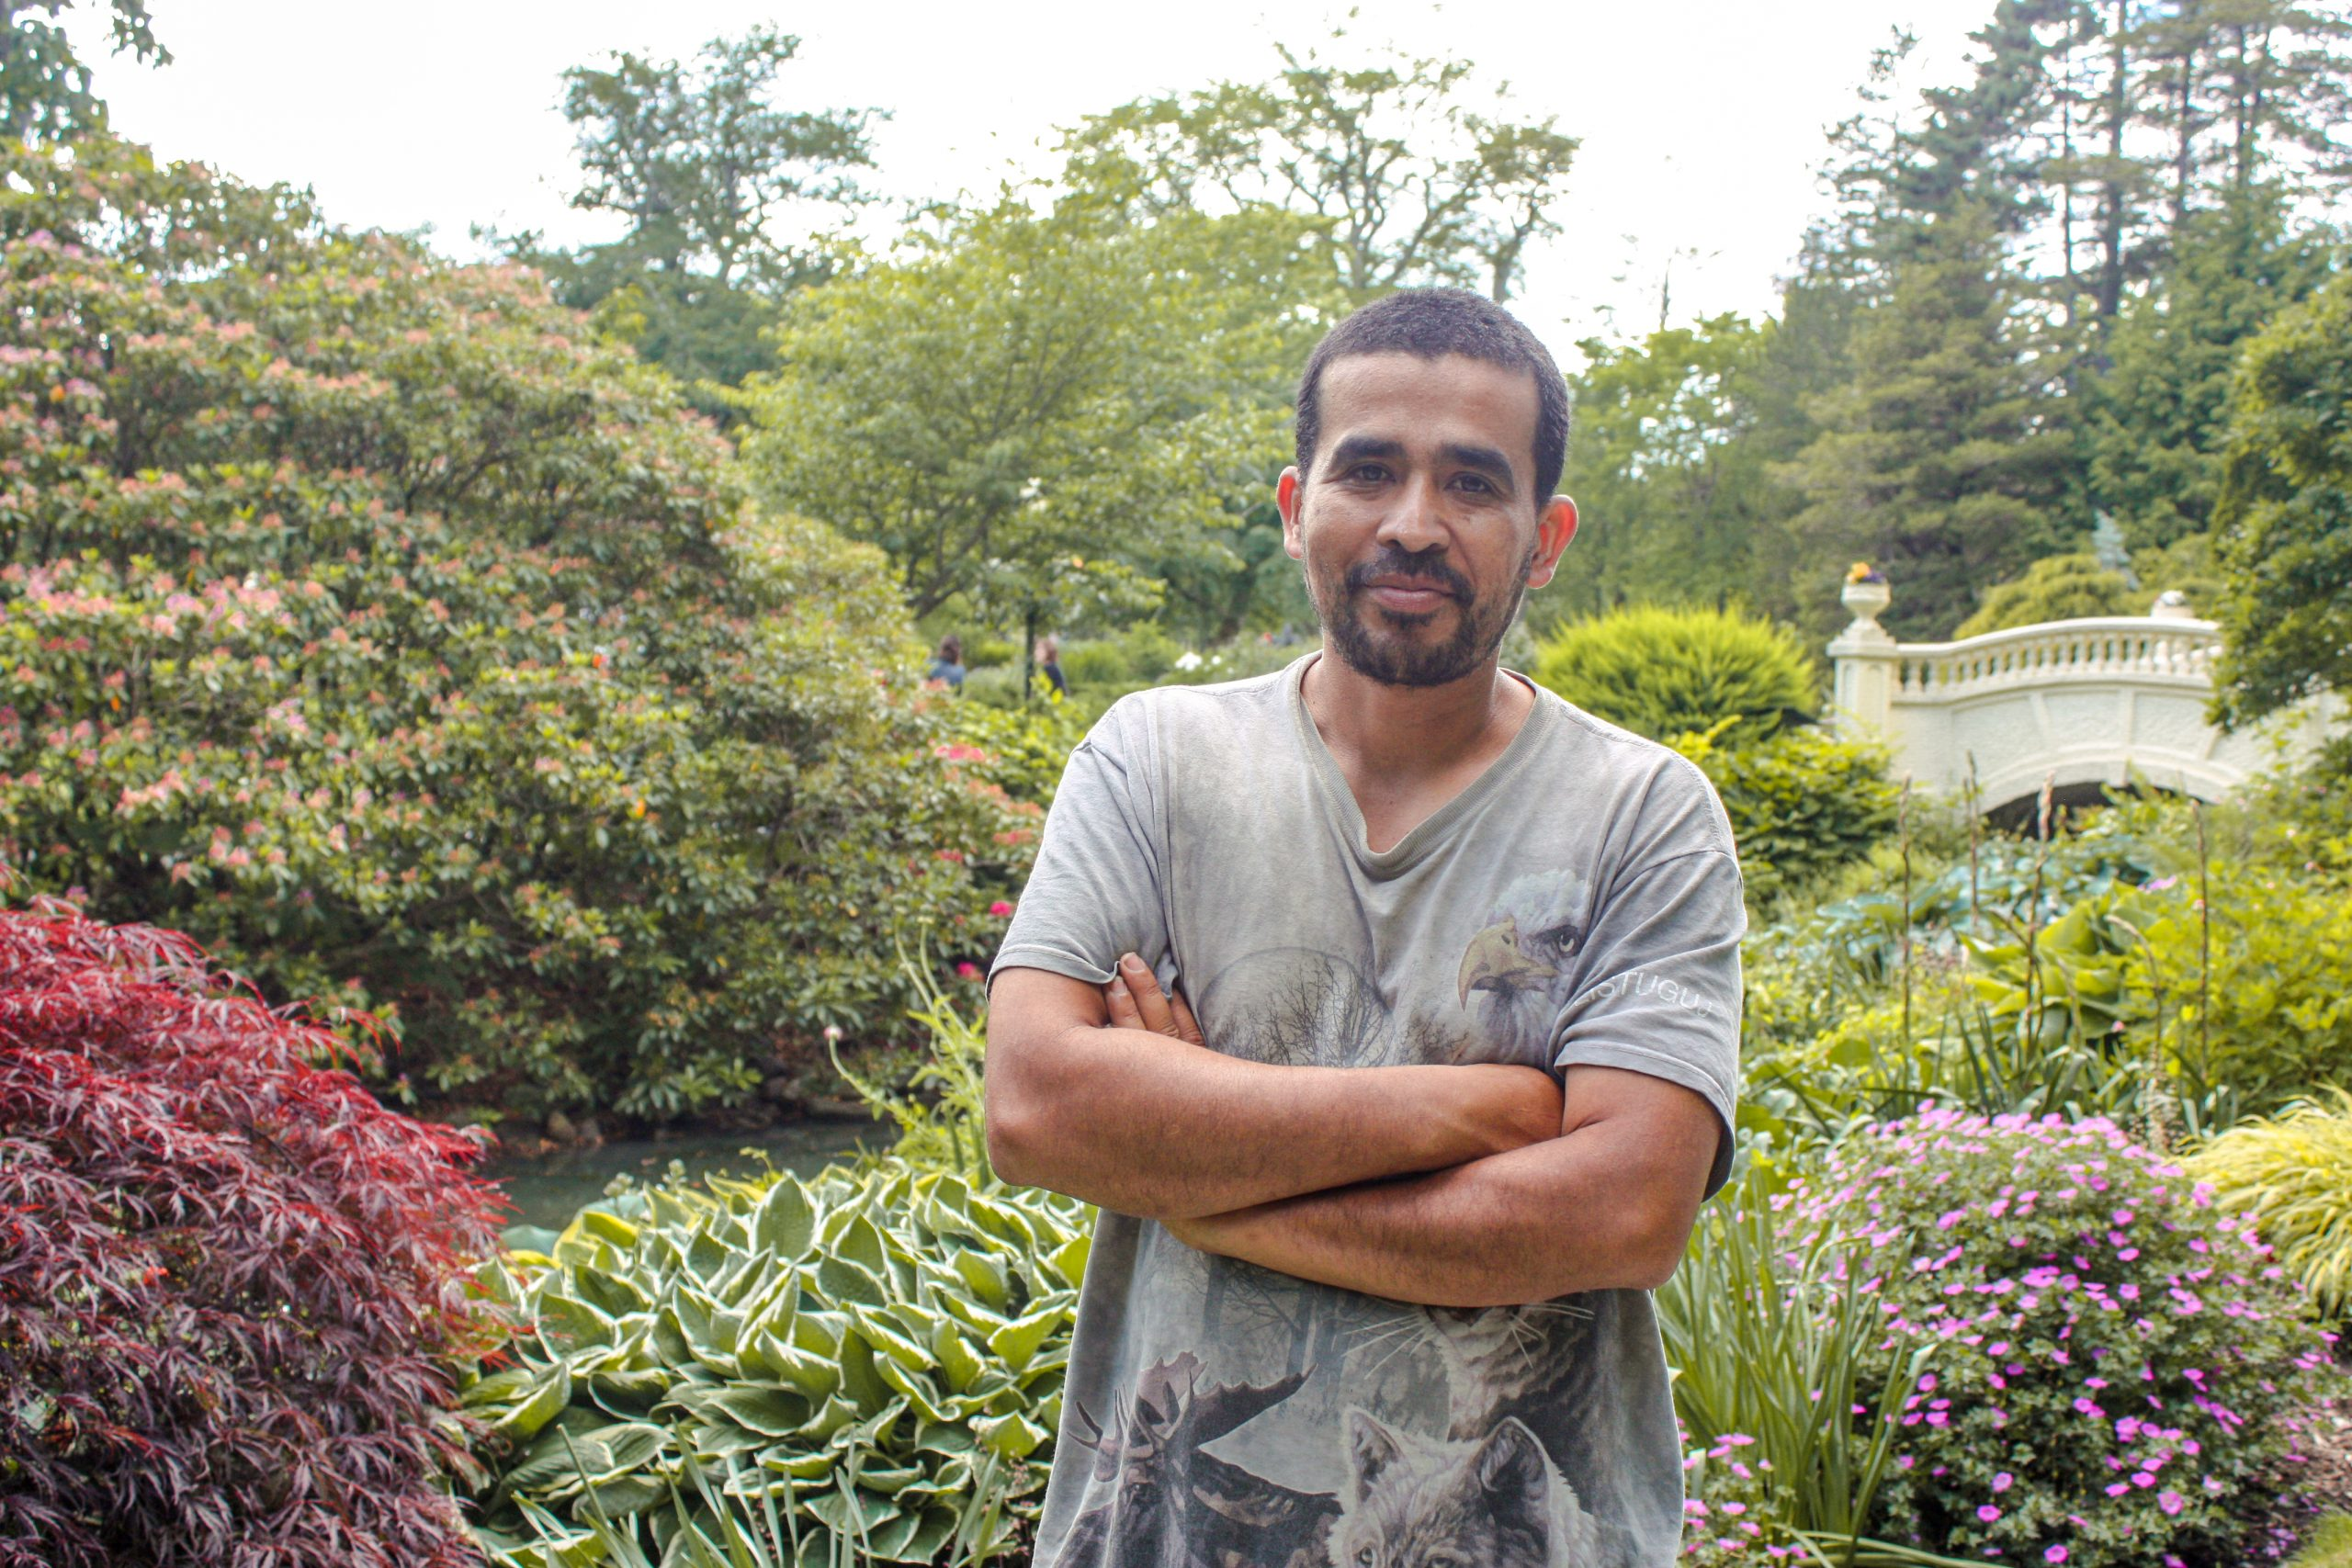 From seasonal agricultural worker to Canadian citizen